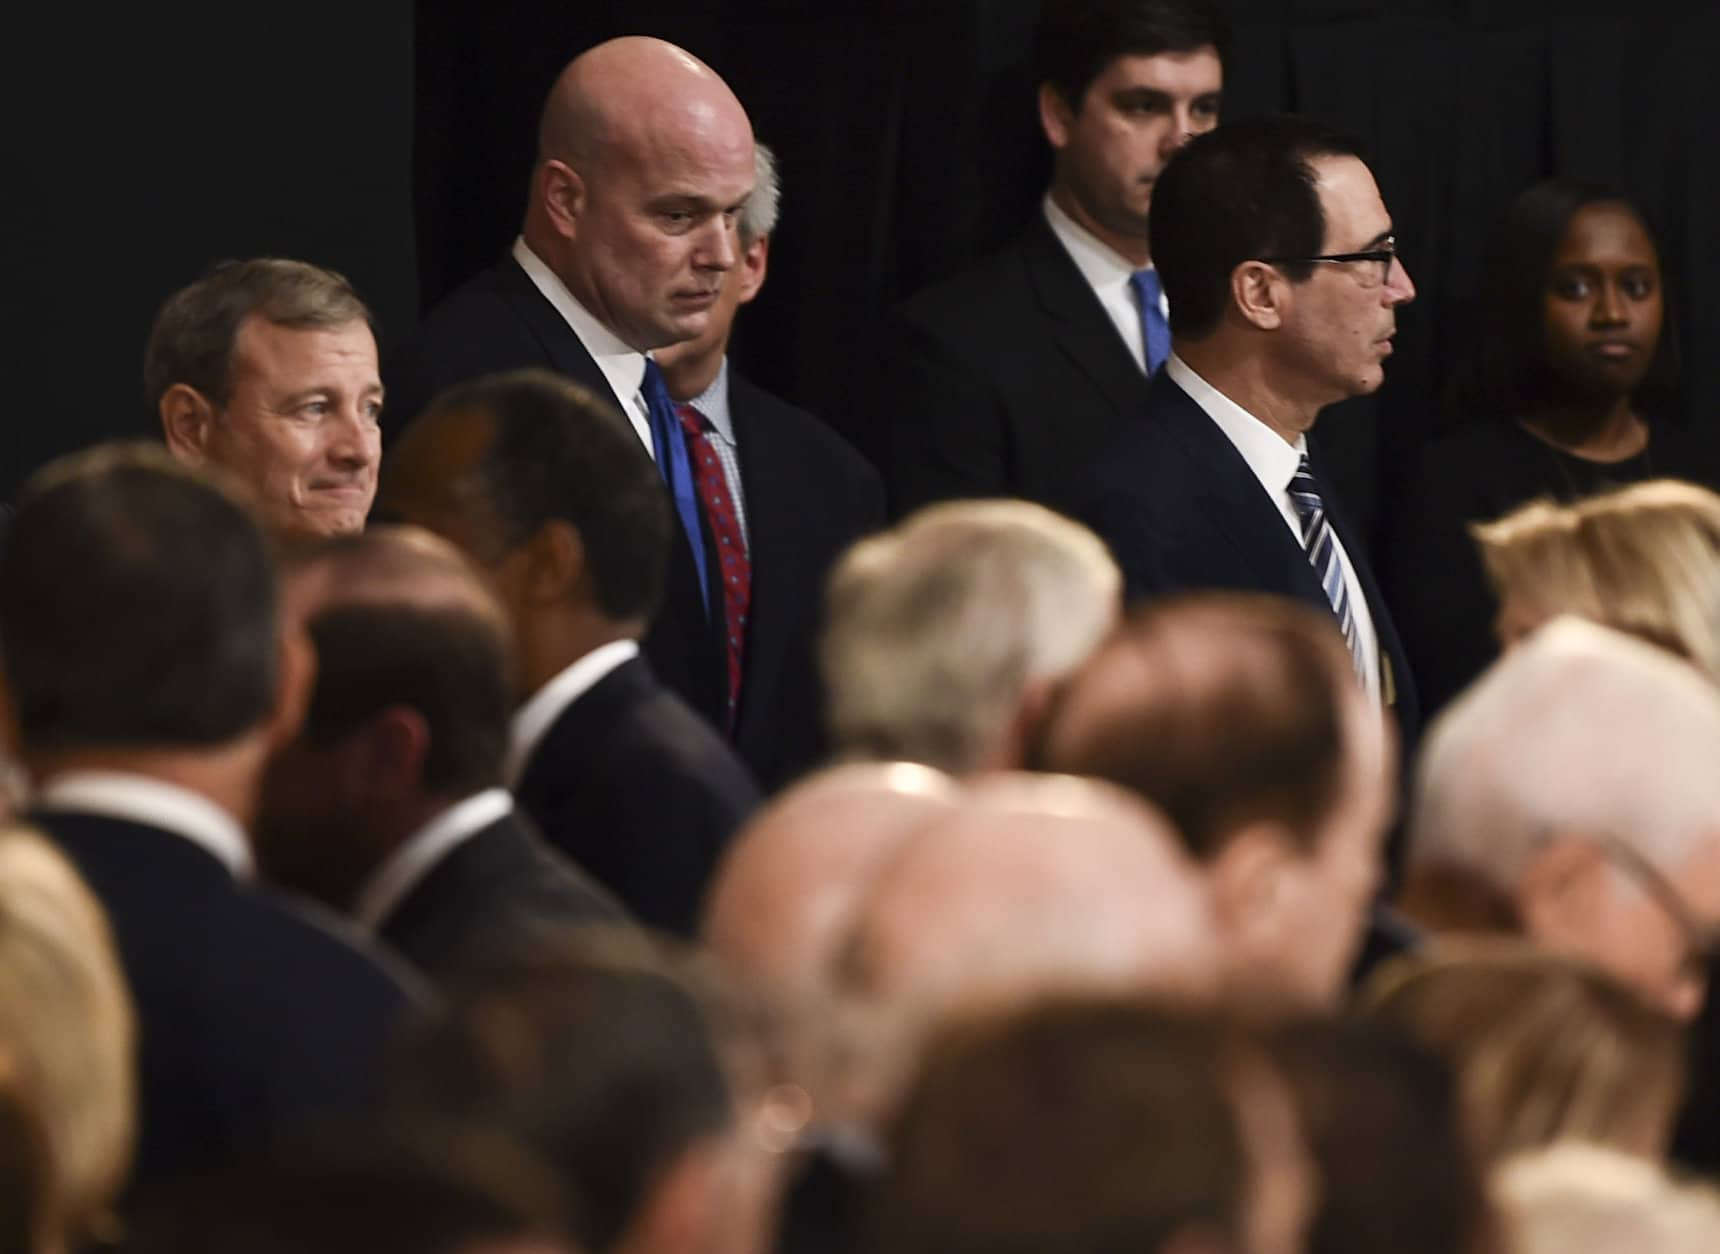 Member of the Supreme Court Chief Justice, John Roberts, left, acting Attorney General, Matthew Whitaker, center, and Secretary of the Treasury, Steven Mnuchin, right, wait for the casket containing the remains of former President George H.W. Bush to arrive at the Capitol in Washington, Monday, Dec. 3, 2018. (Brendan Smialowski/Pool Photo via AP)